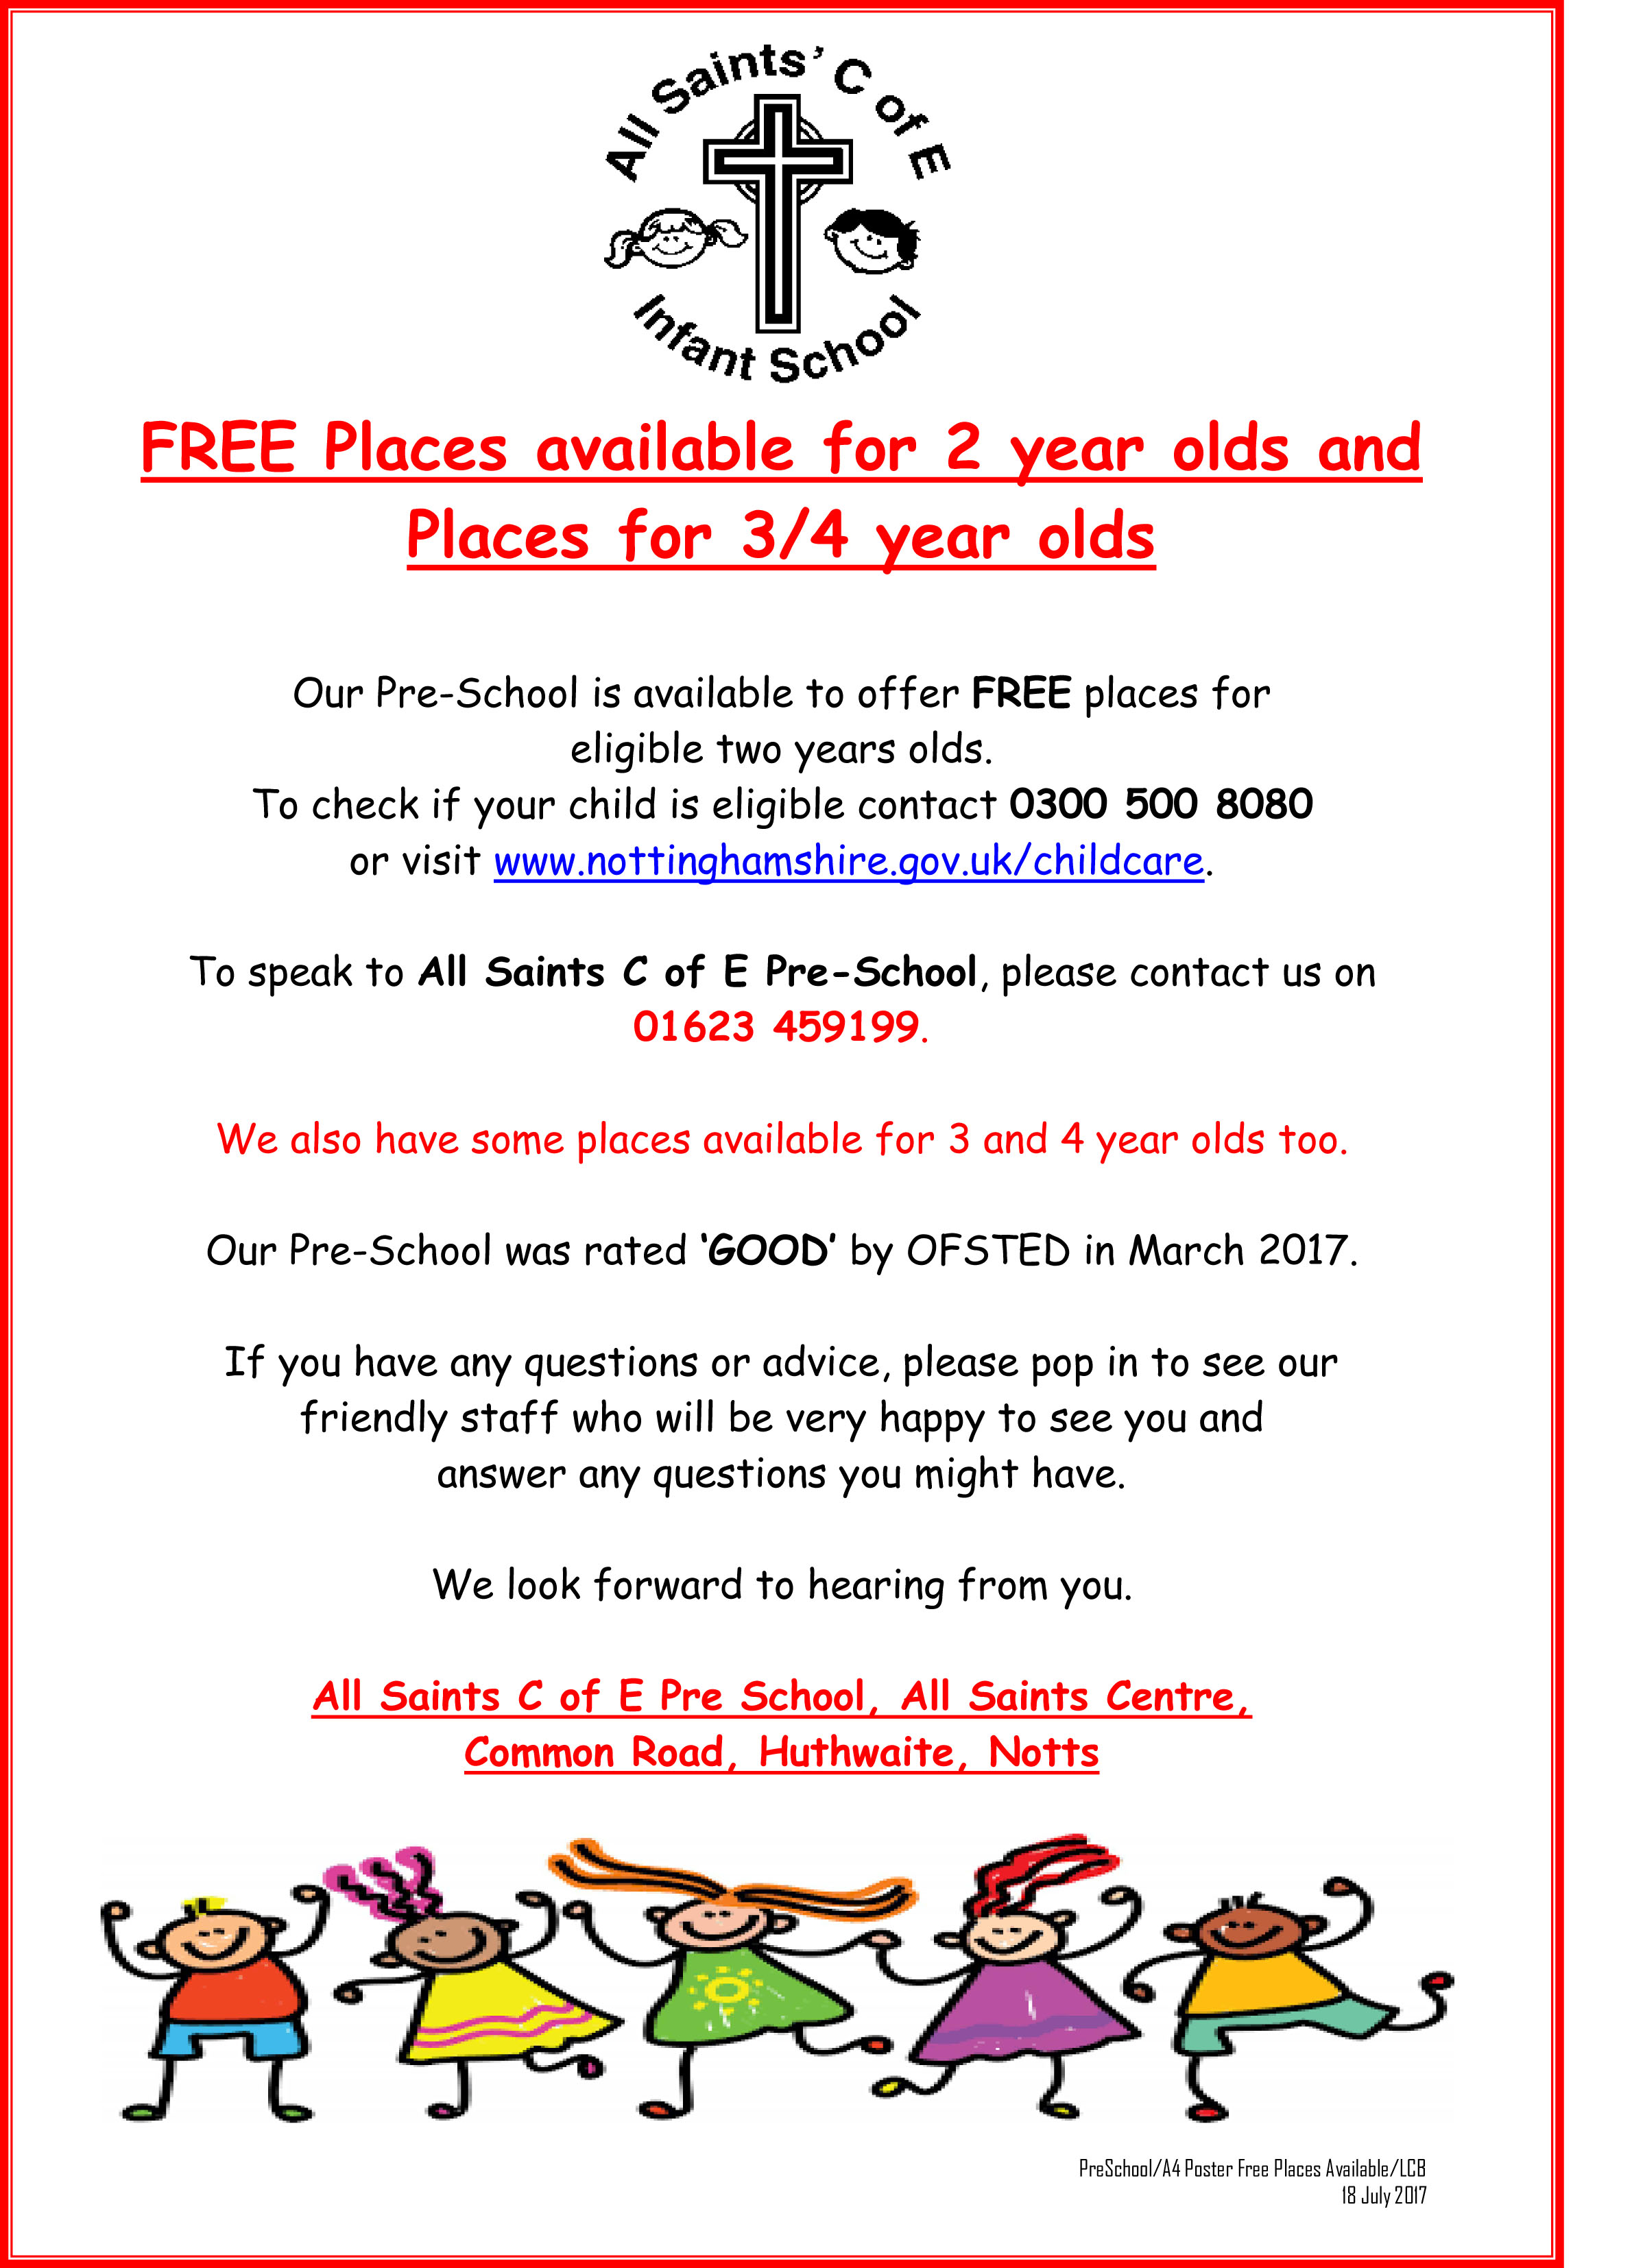 a4-poster-free-places-available-for-2-year-olds-and-places-for-3